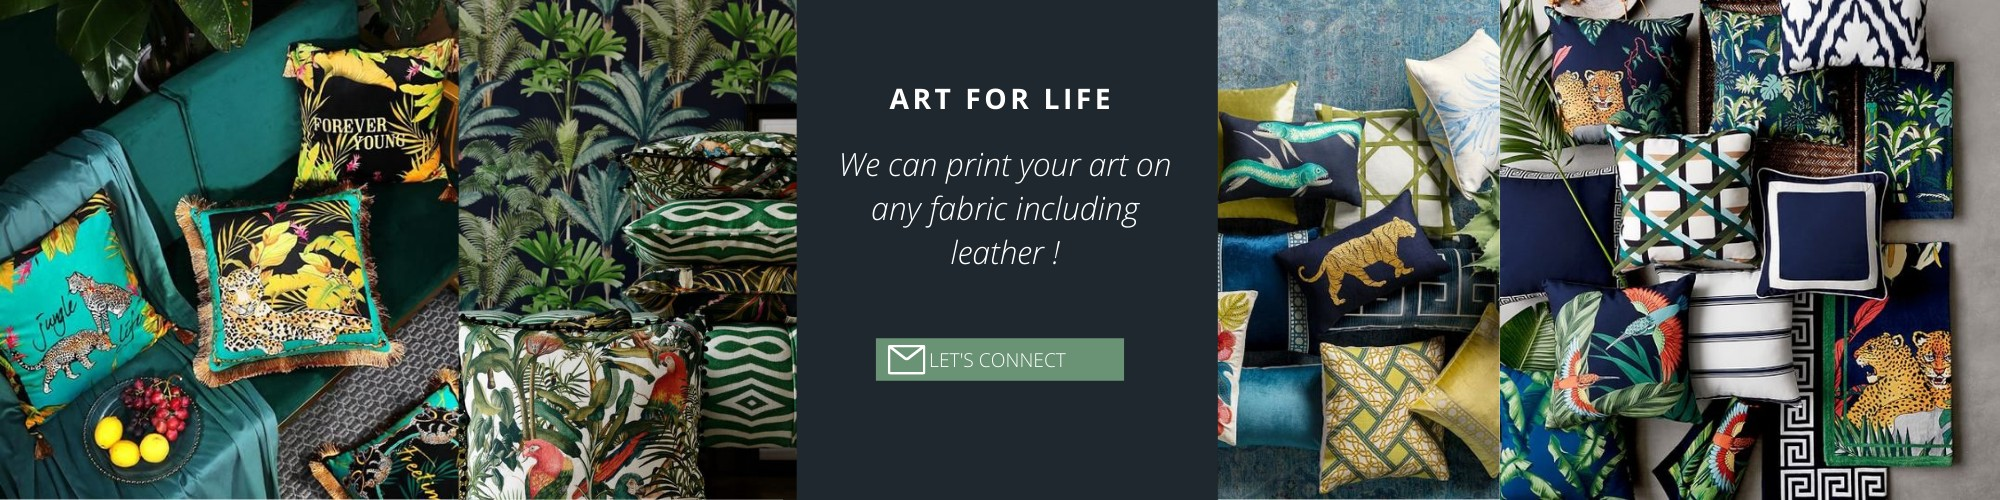 We can print your art